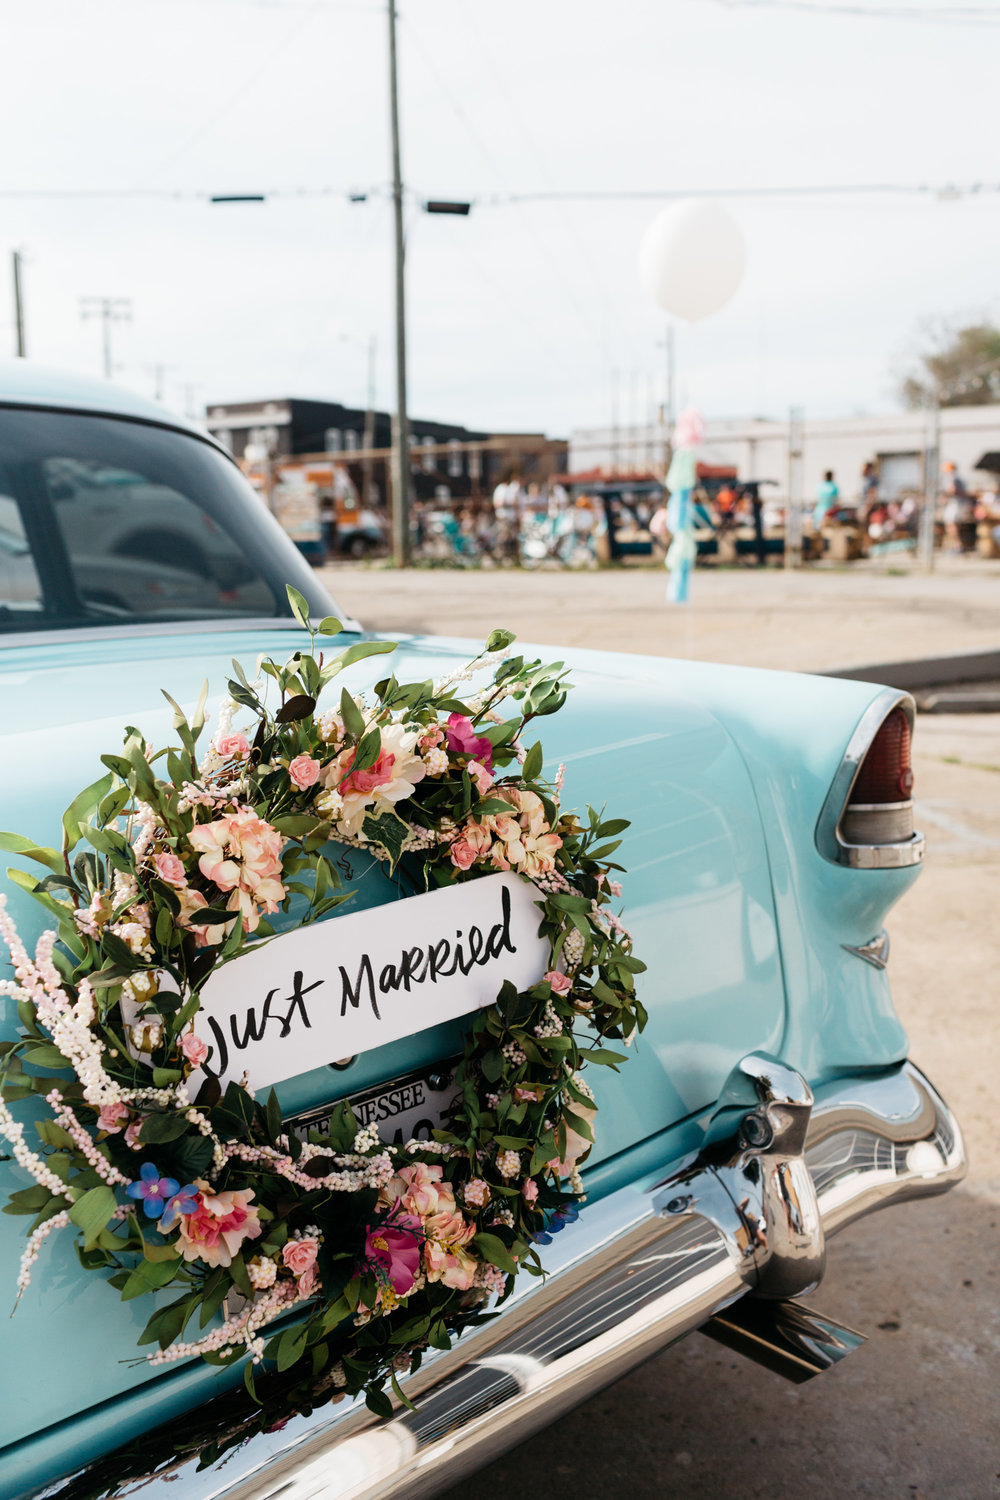 Standard Downtown Knoxville Wedding Venue Central Avenue Happy Holler Blue Car Floral Wreath